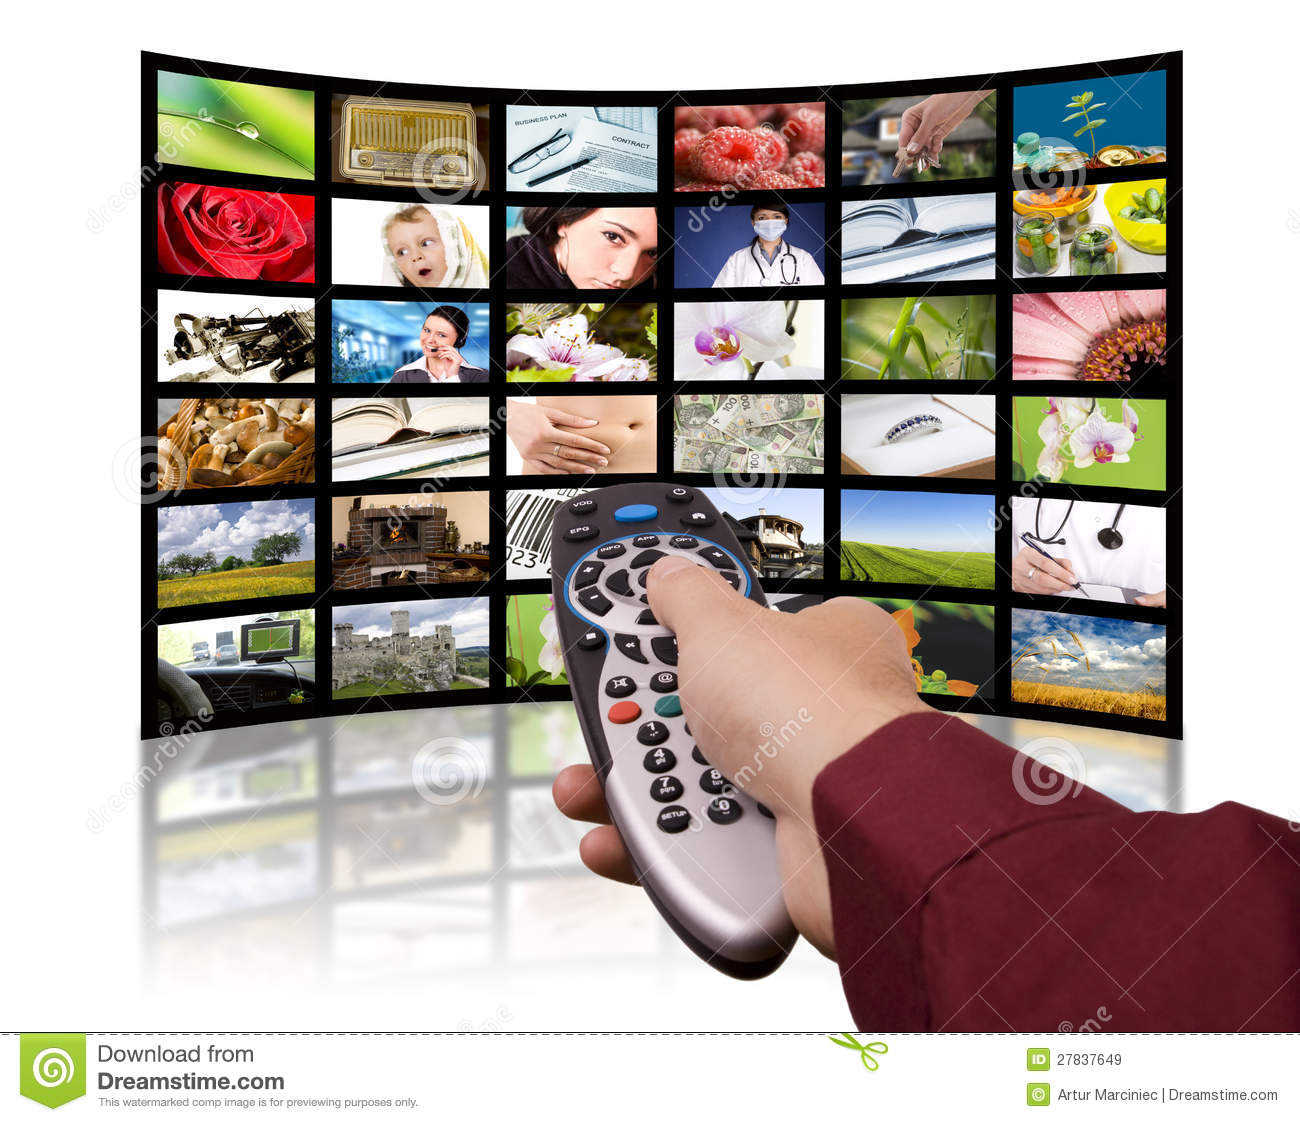 What Time Is It On What Tv: Digital Television, Remote Control TV. Royalty Free Stock